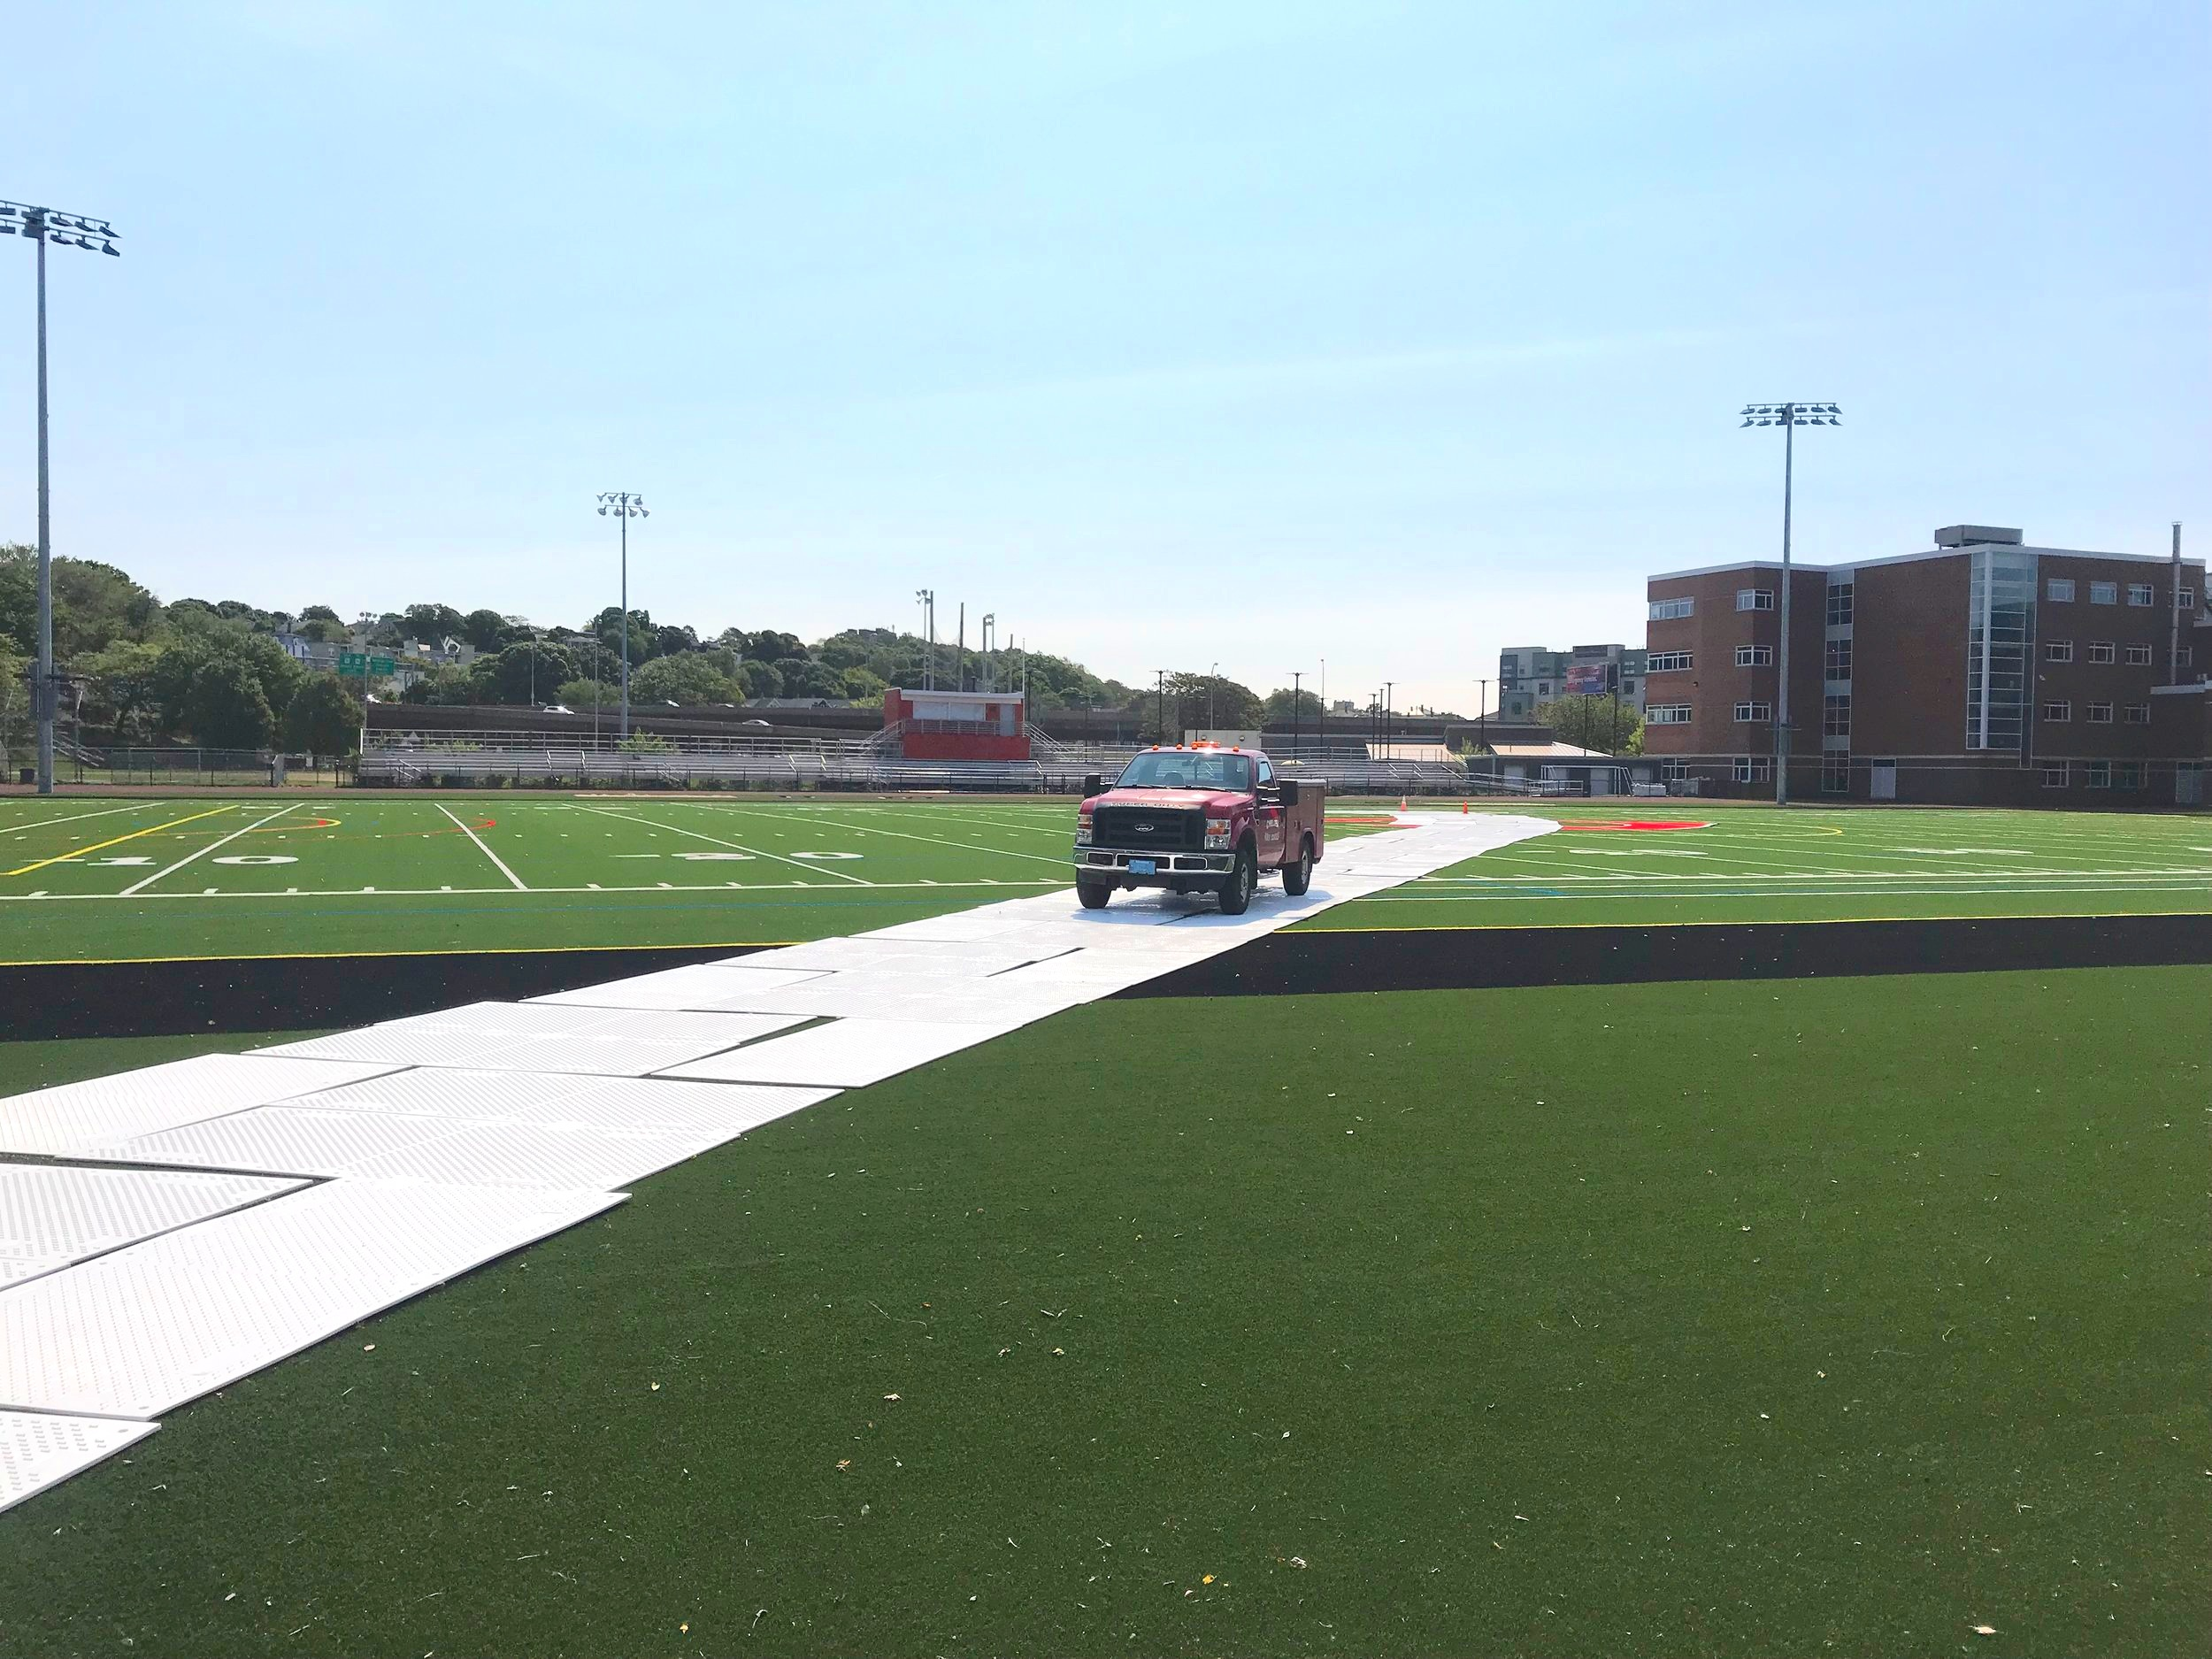 EverRoad is a driveable roadway system for use on soft ground or over natural and synthetic turf